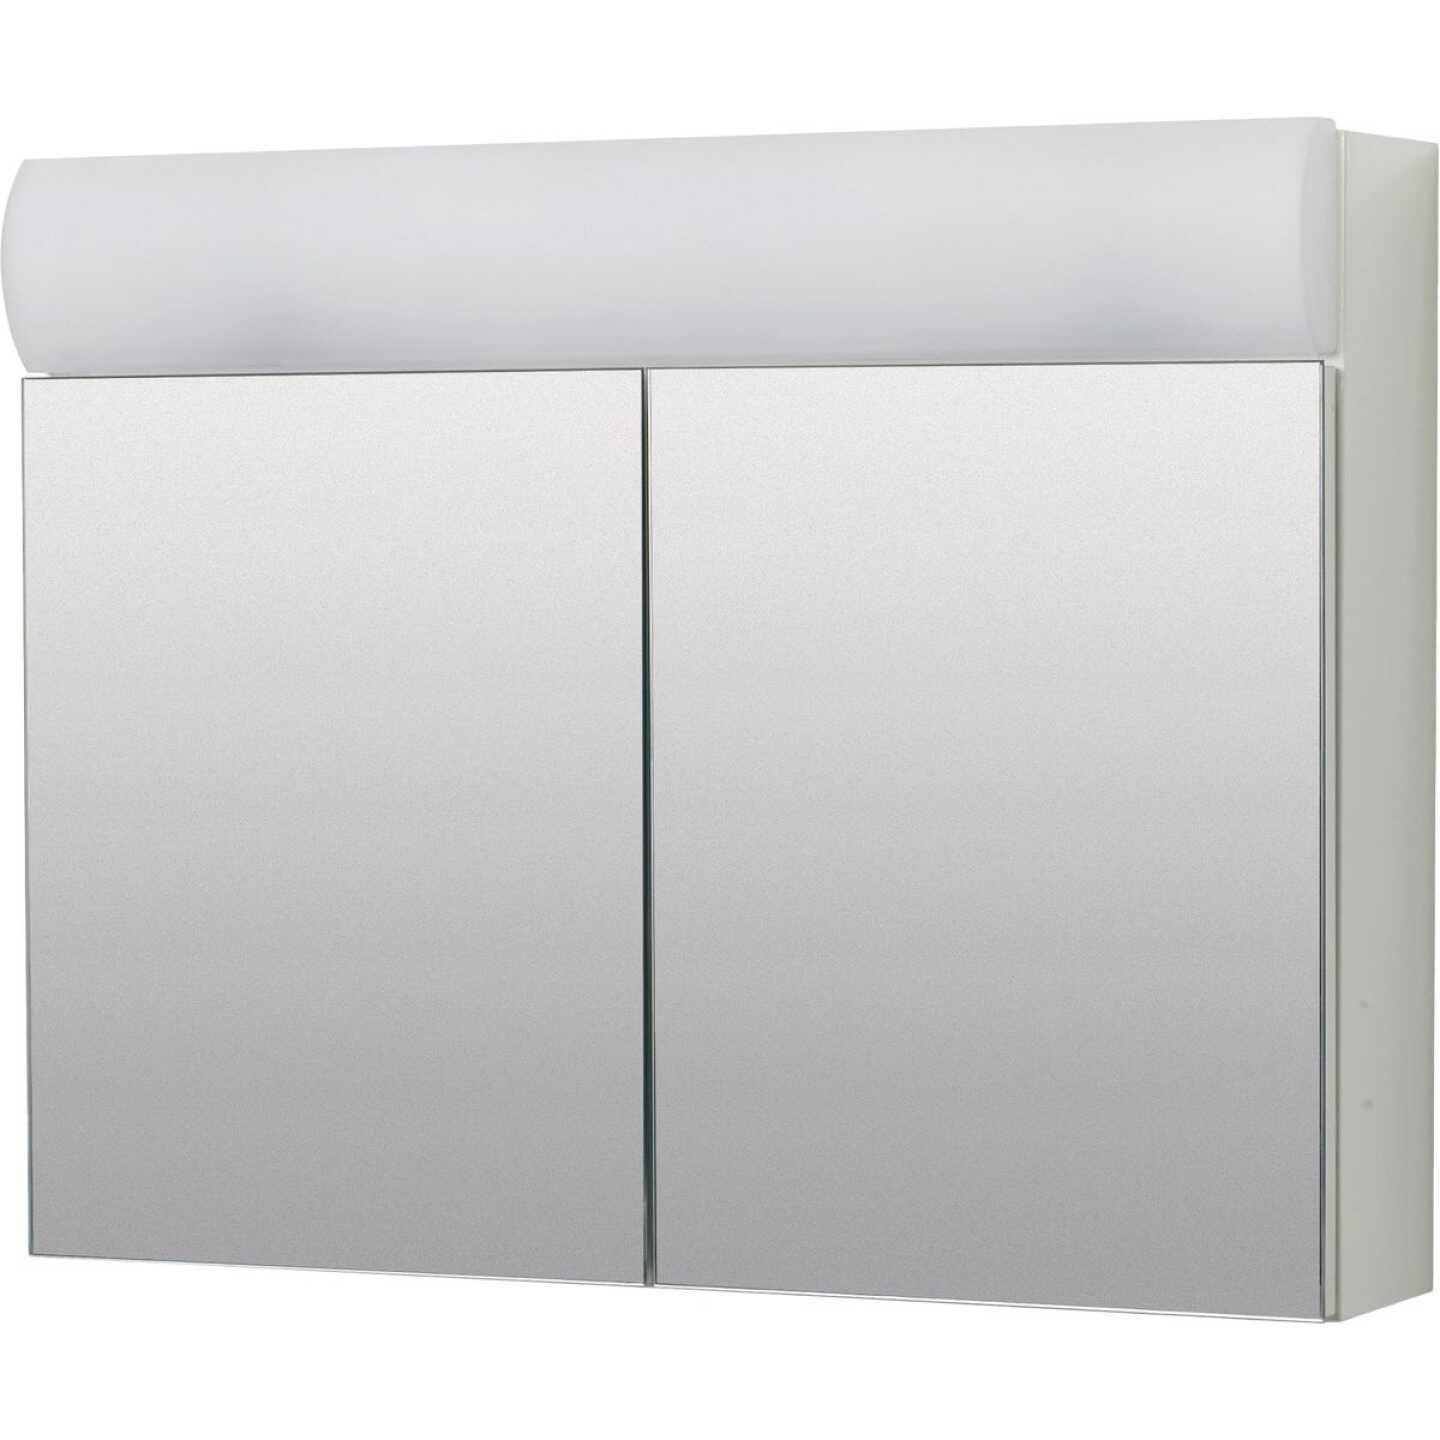 Zenith Zenna Home Frameless 23.25 In. W. x 18.63 In. H. x 5.88 In. D. Bi-View Surface Mounted Lighted Medicine Cabinet Image 1